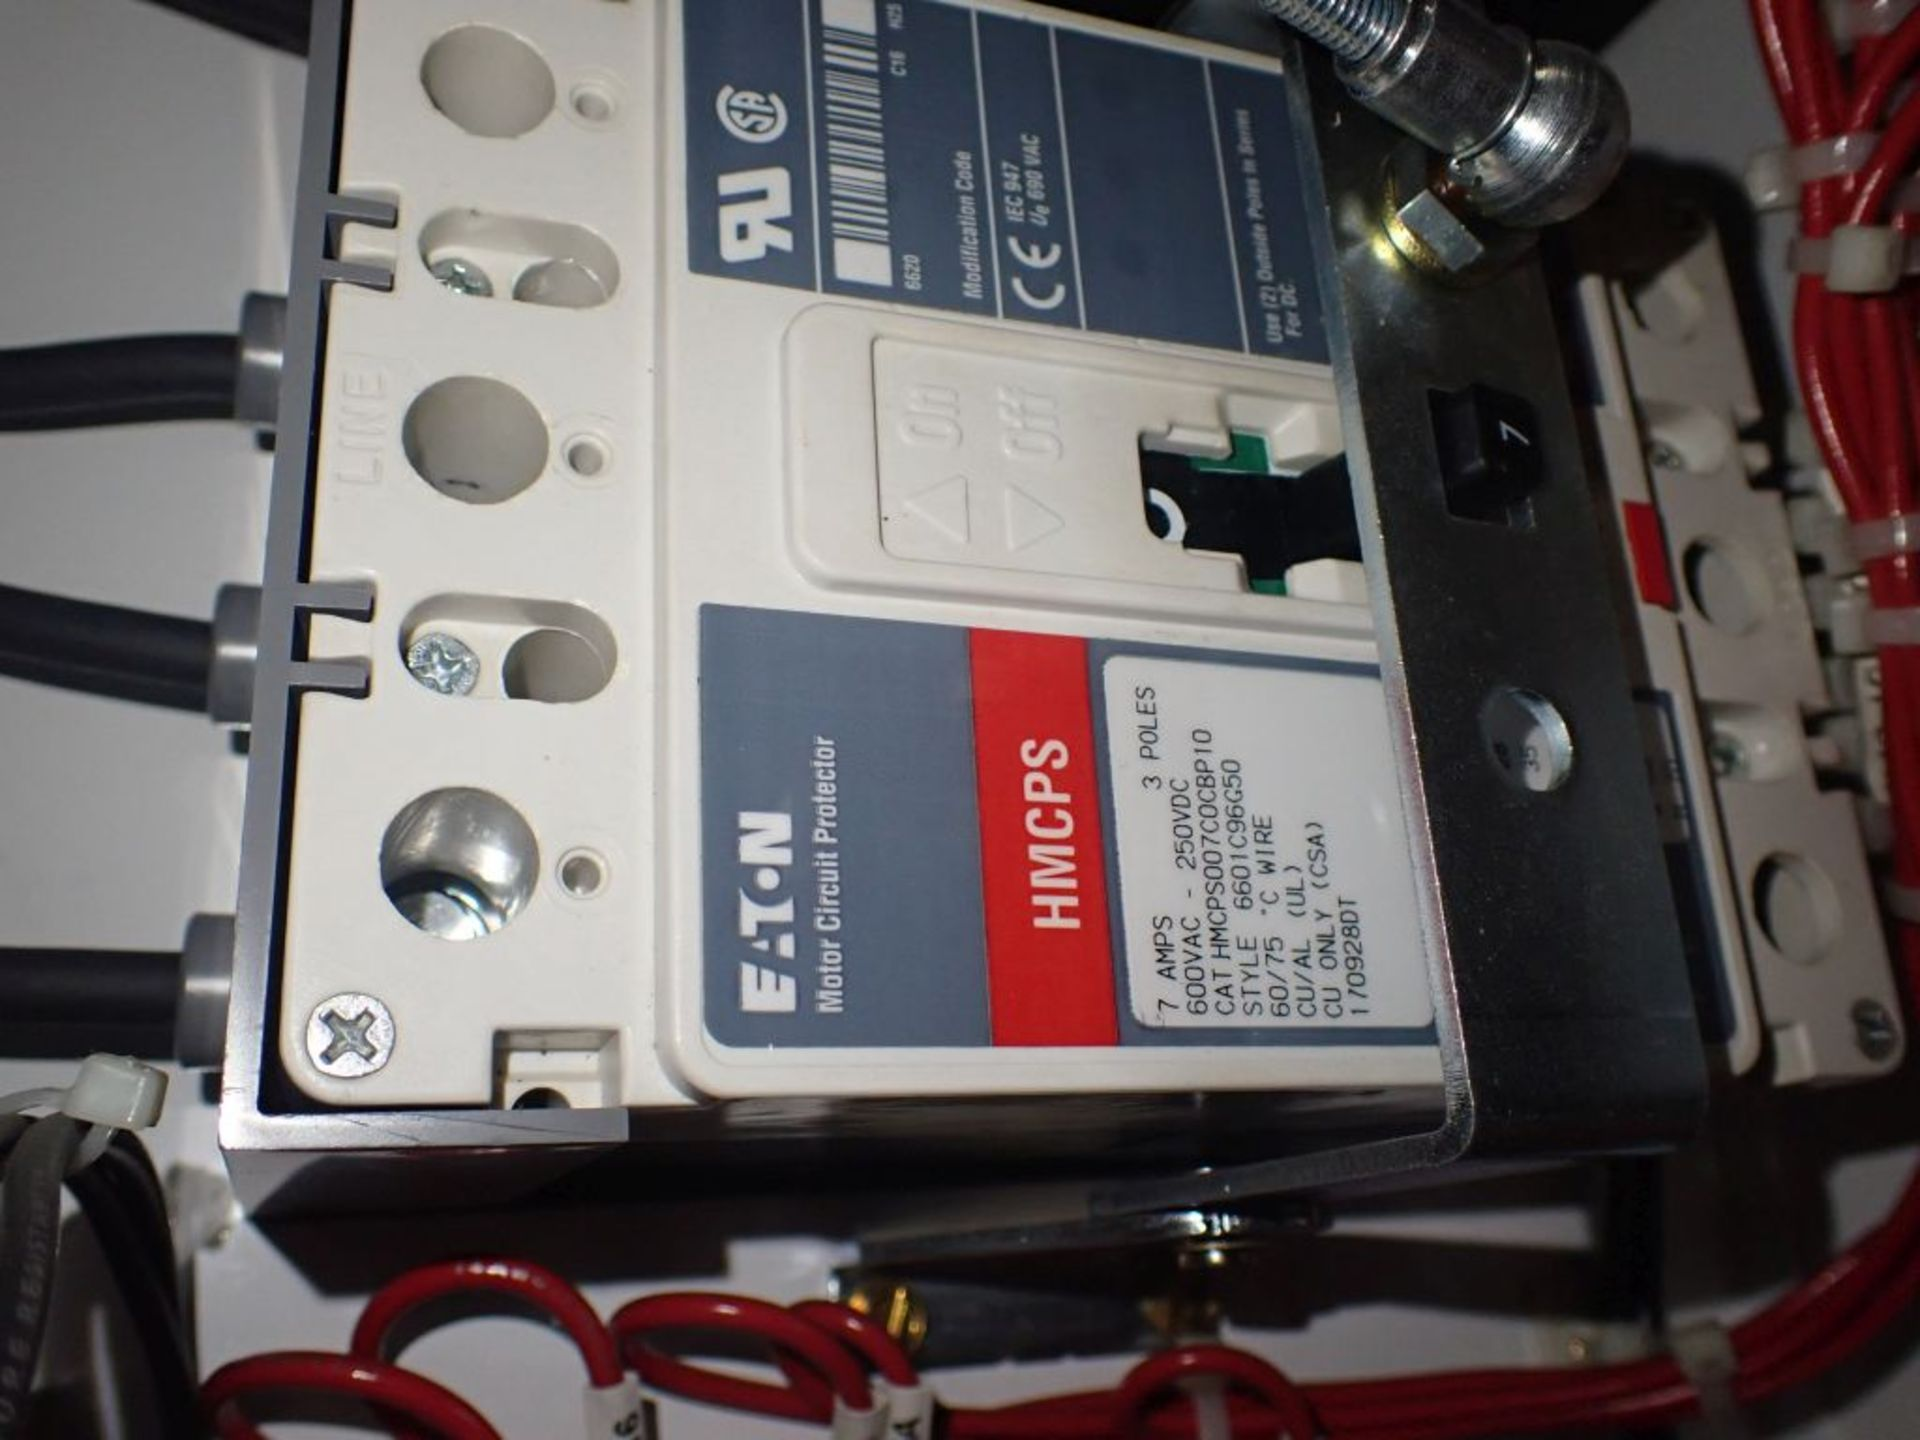 Eaton Freedom 2100 Series Motor Control Center | (2) F206-7A-10HP; (3) F206-15A-10HP; (1) FDRB-100A; - Image 54 of 87